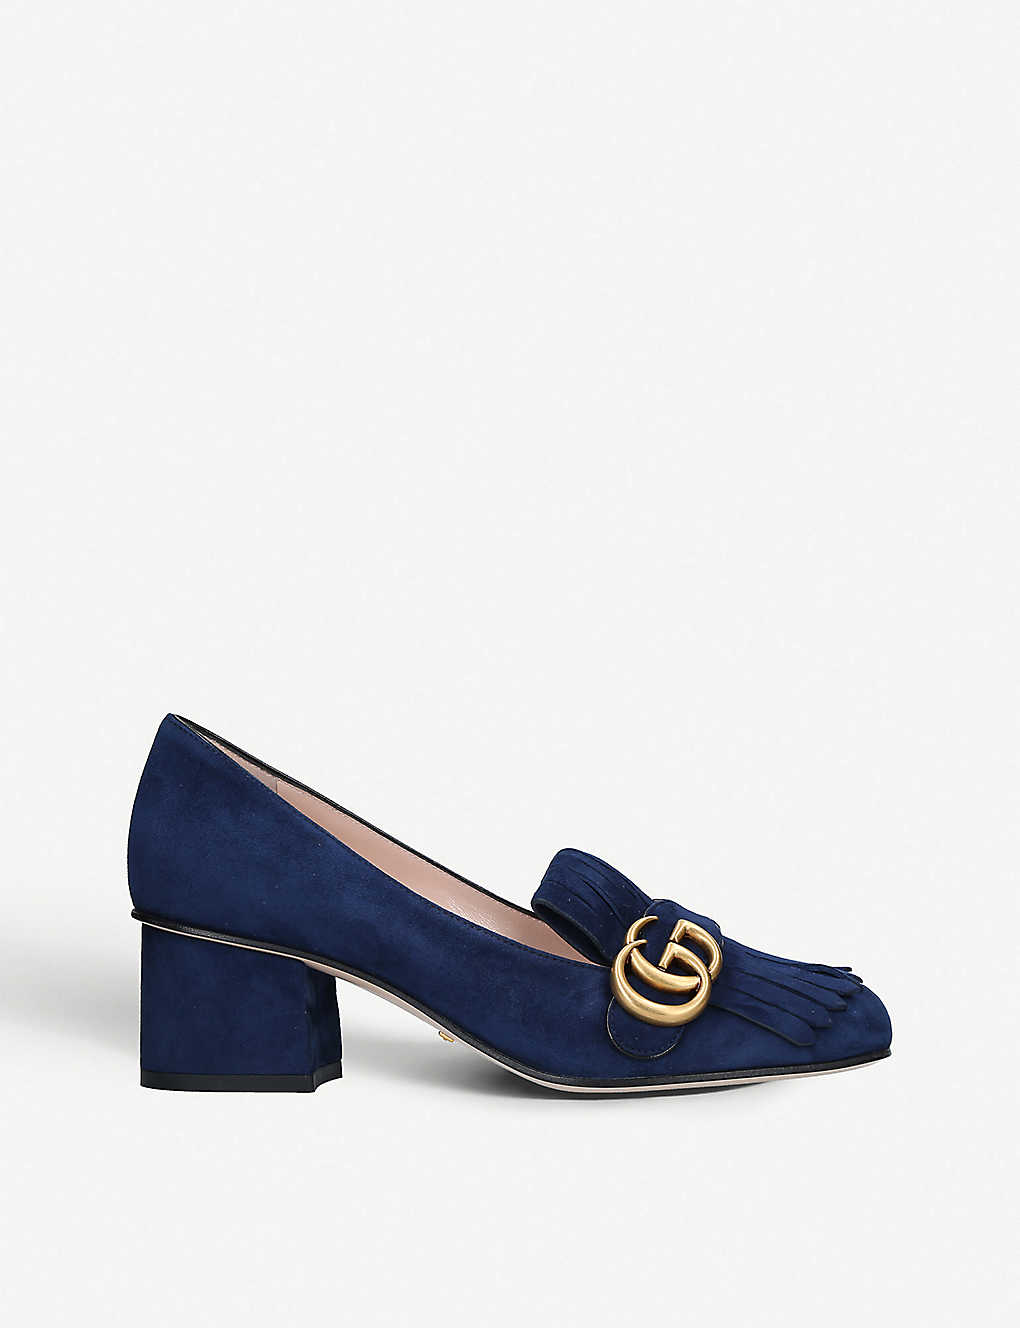 96a5caac646 Marmont fringed suede loafers - Blue ...